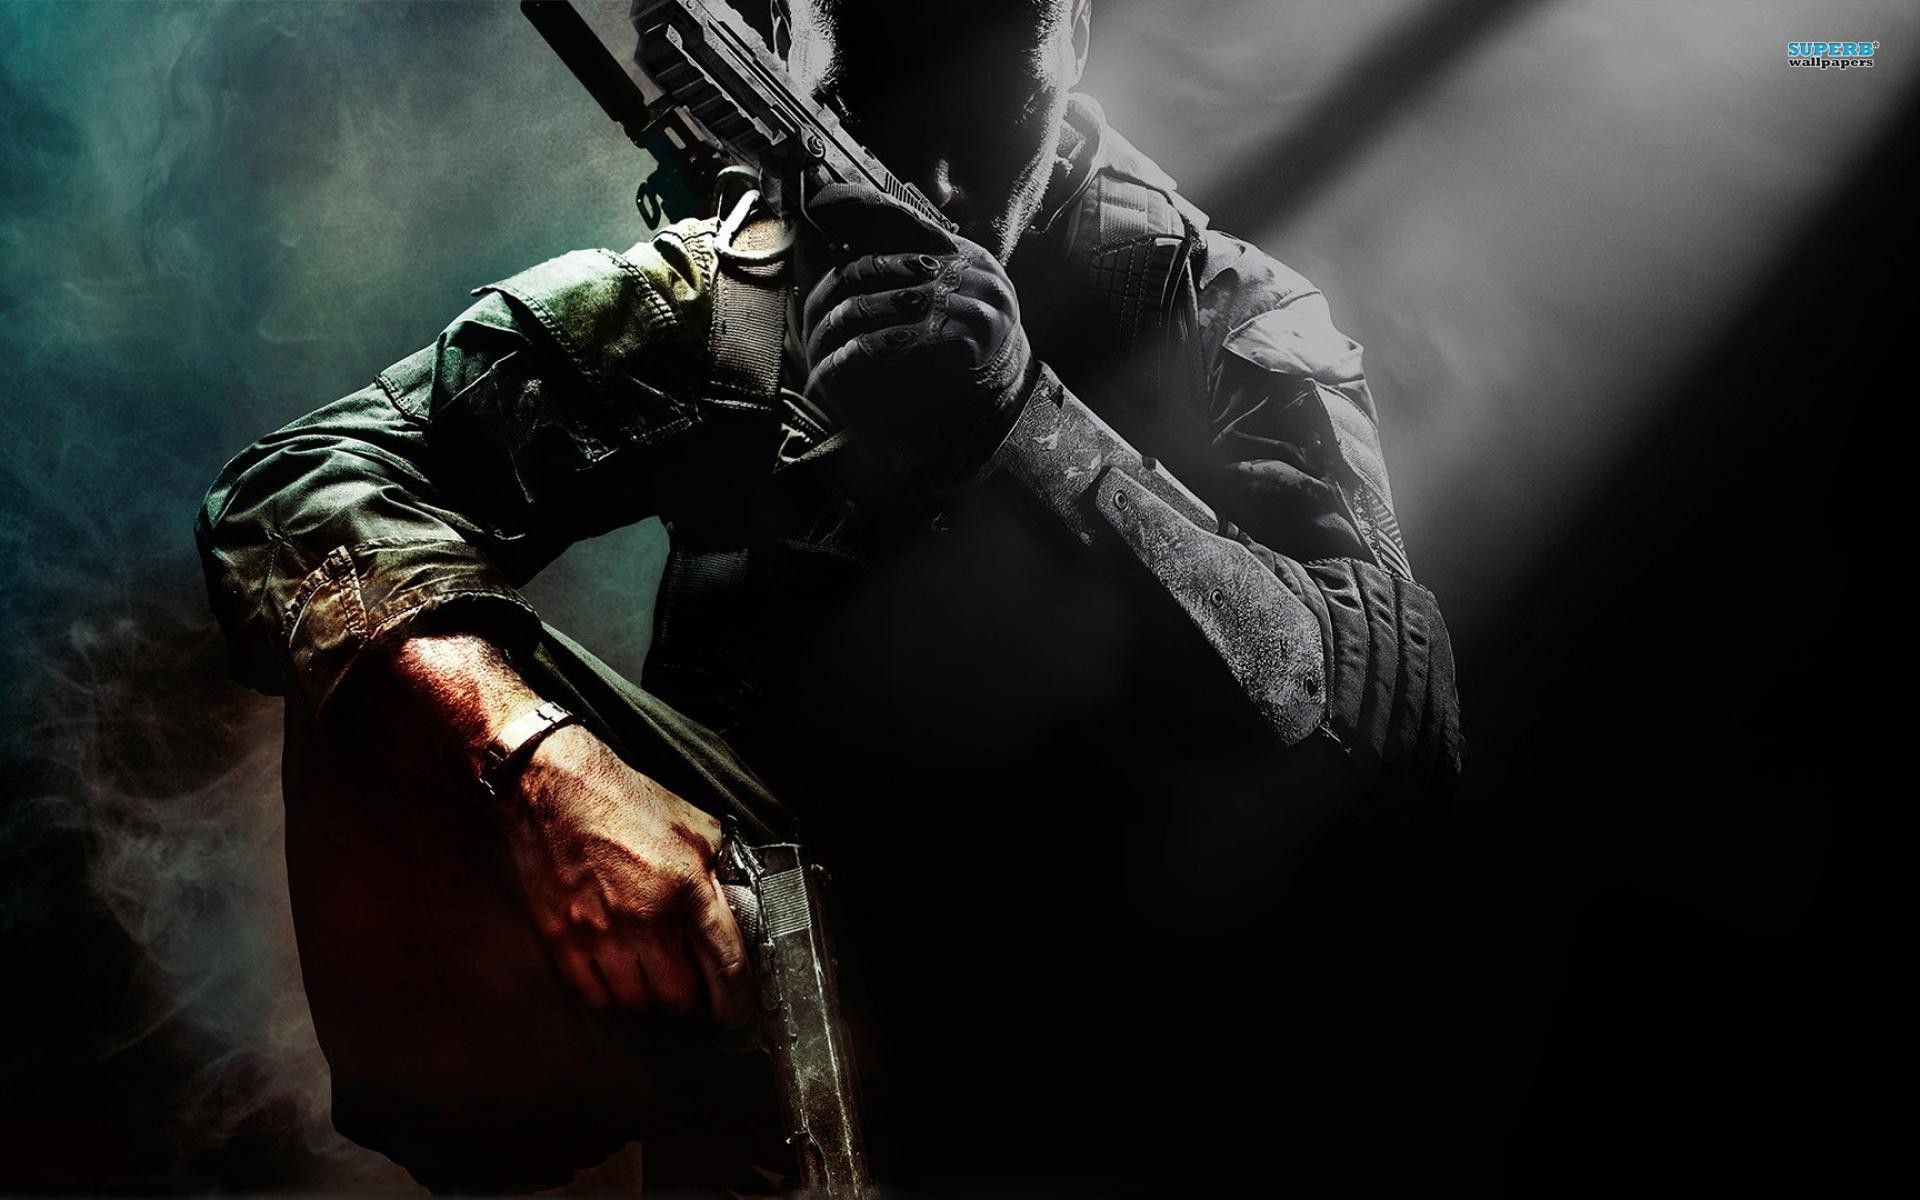 Black Ops Wallpapers - Wallpaper Cave